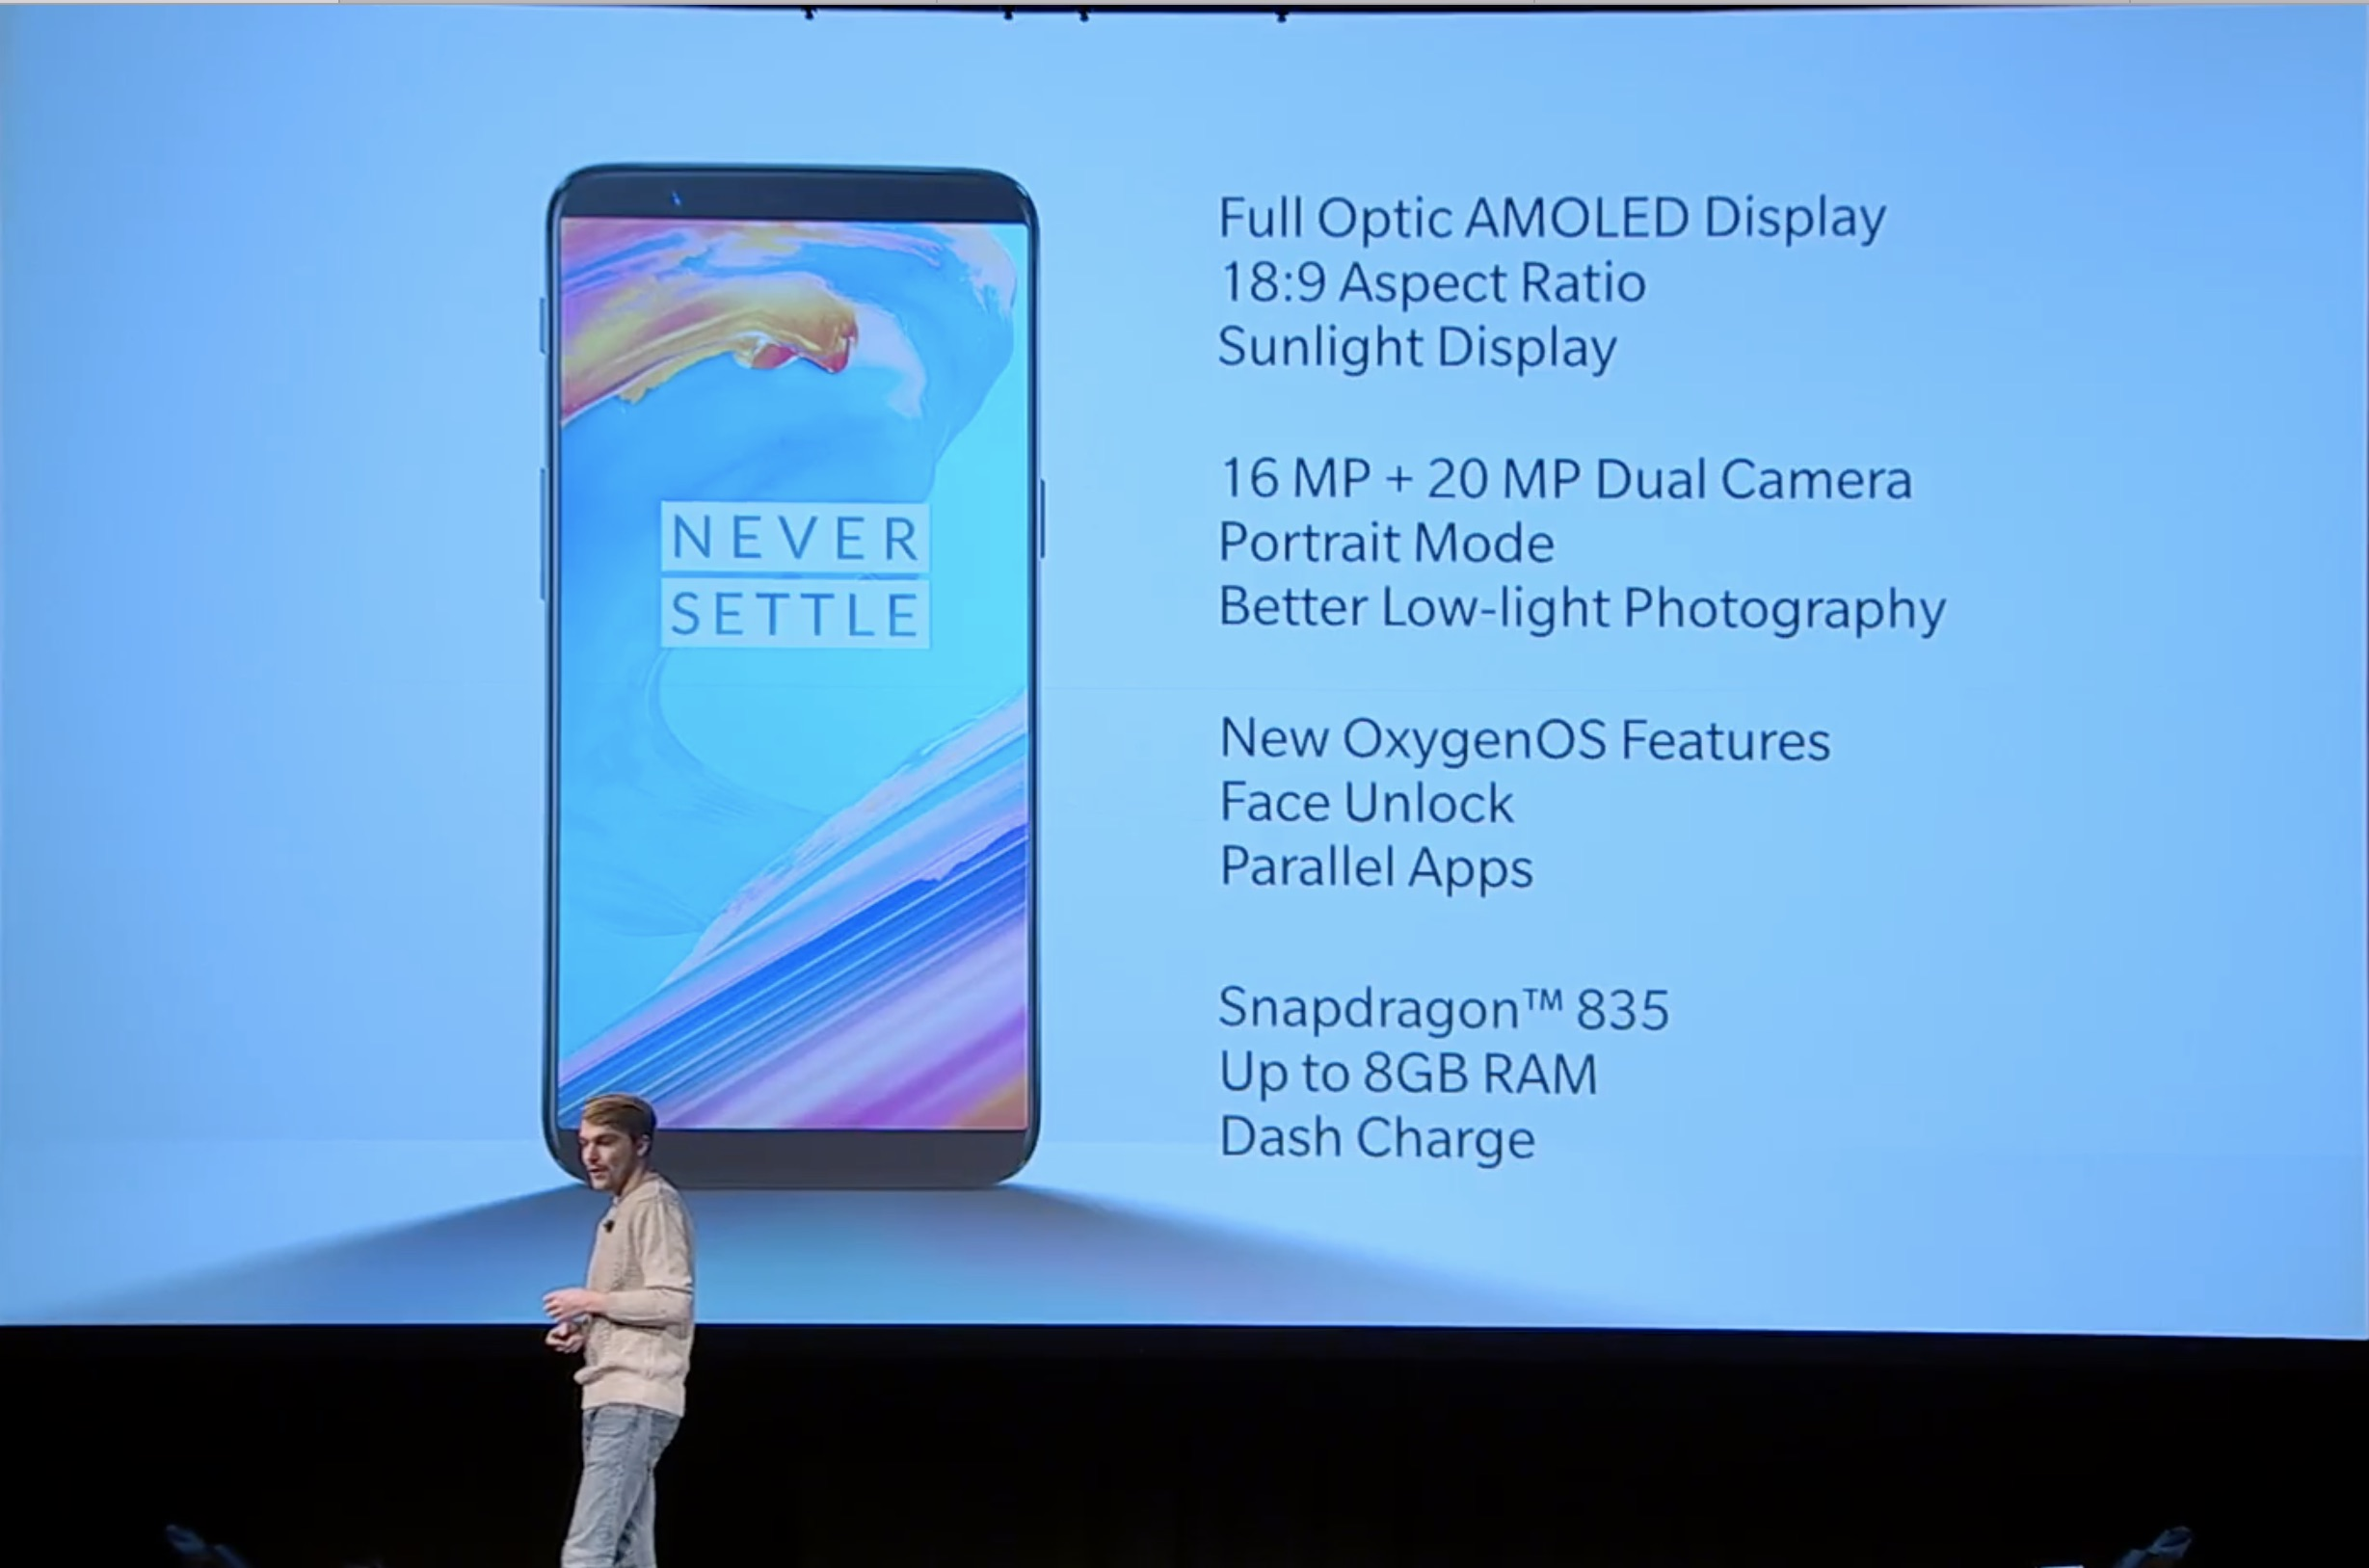 OnePlus 5T Keeps the Headphone Jack, Introduces Face Unlock and